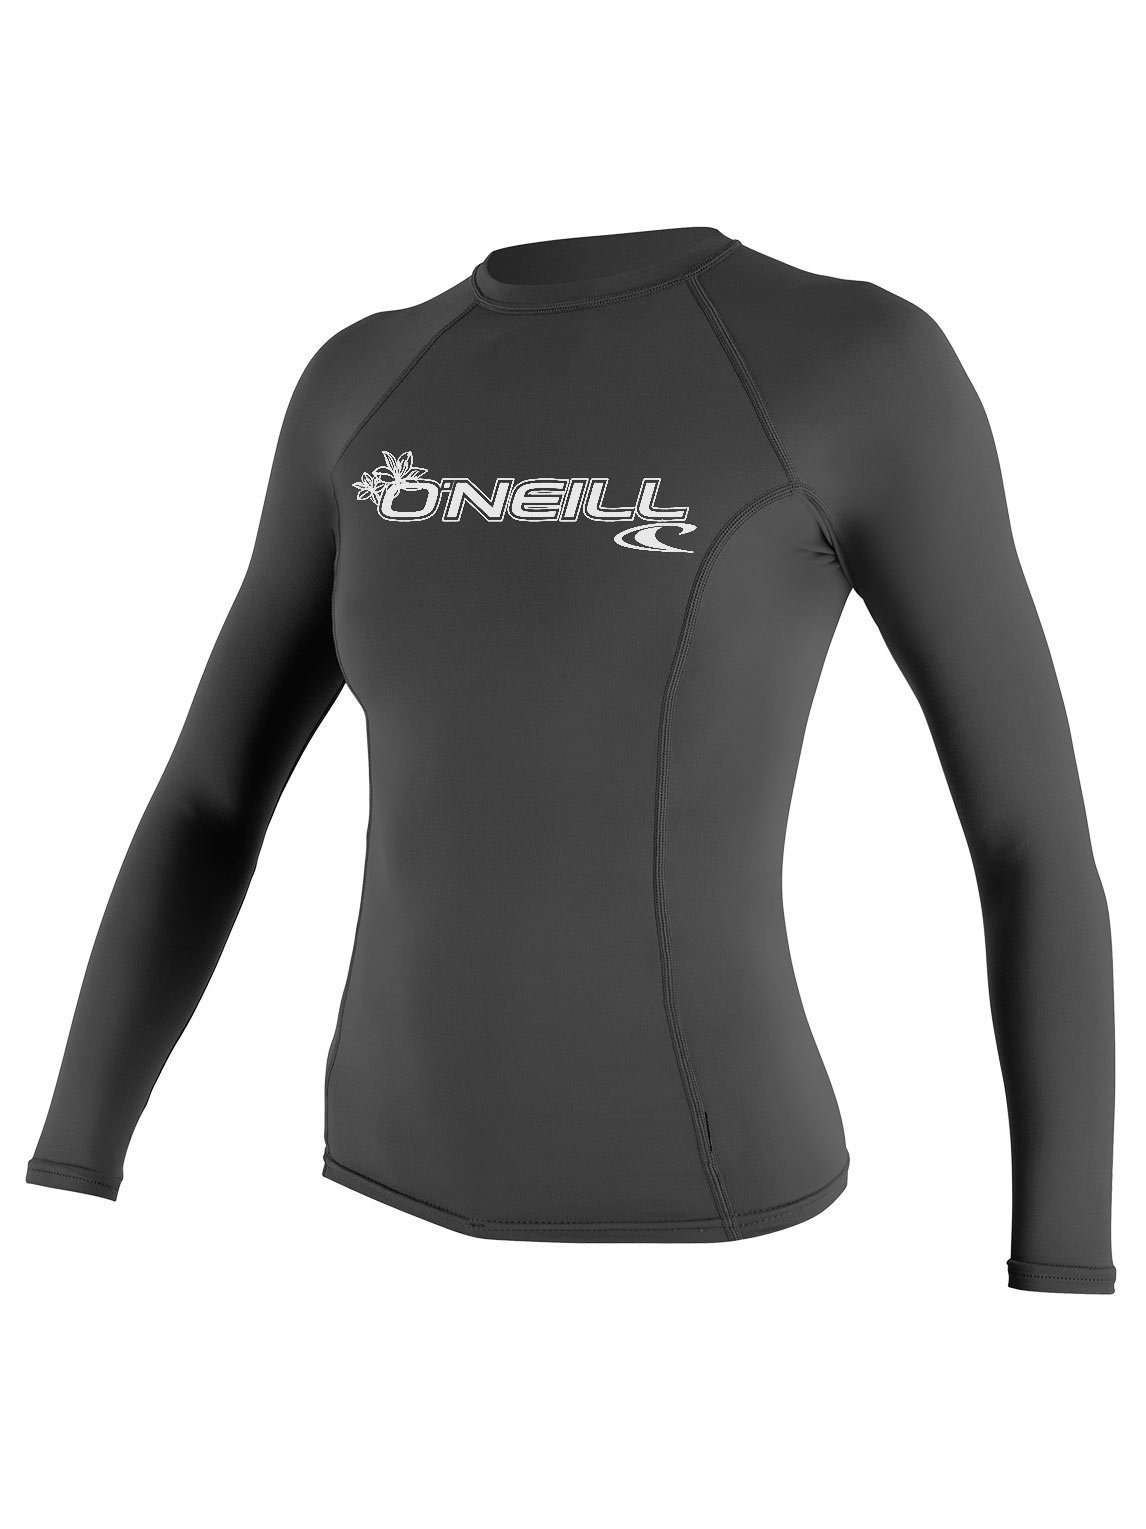 O'Neill Wetsuits Women's Basic Skins UPF 50+ Long Sleeve Rash Guard, Graphite, Small by O'Neill Wetsuits